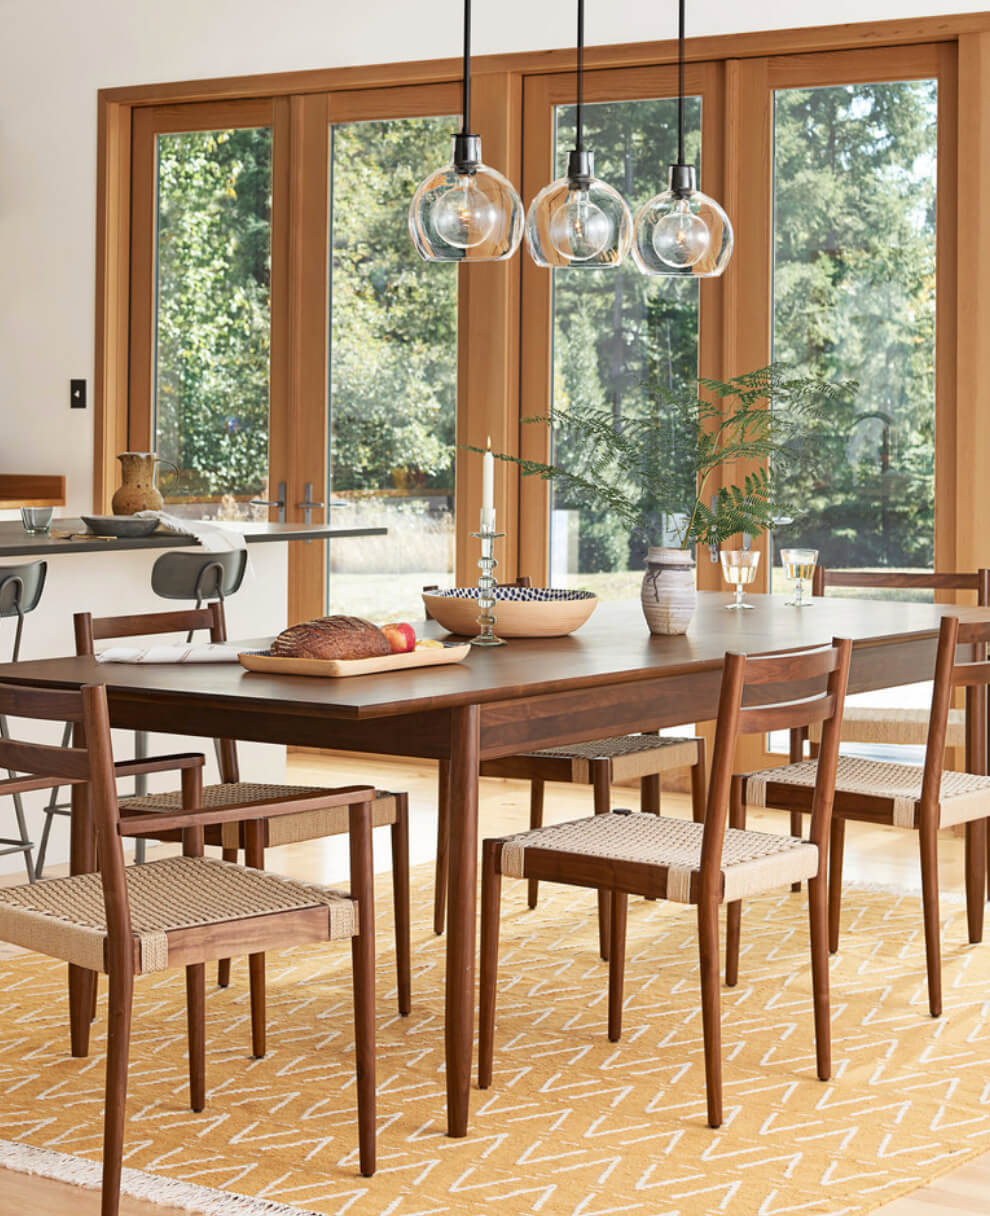 Use Matching Rugs For An Adjacent Dining Room Image Rejuvenation